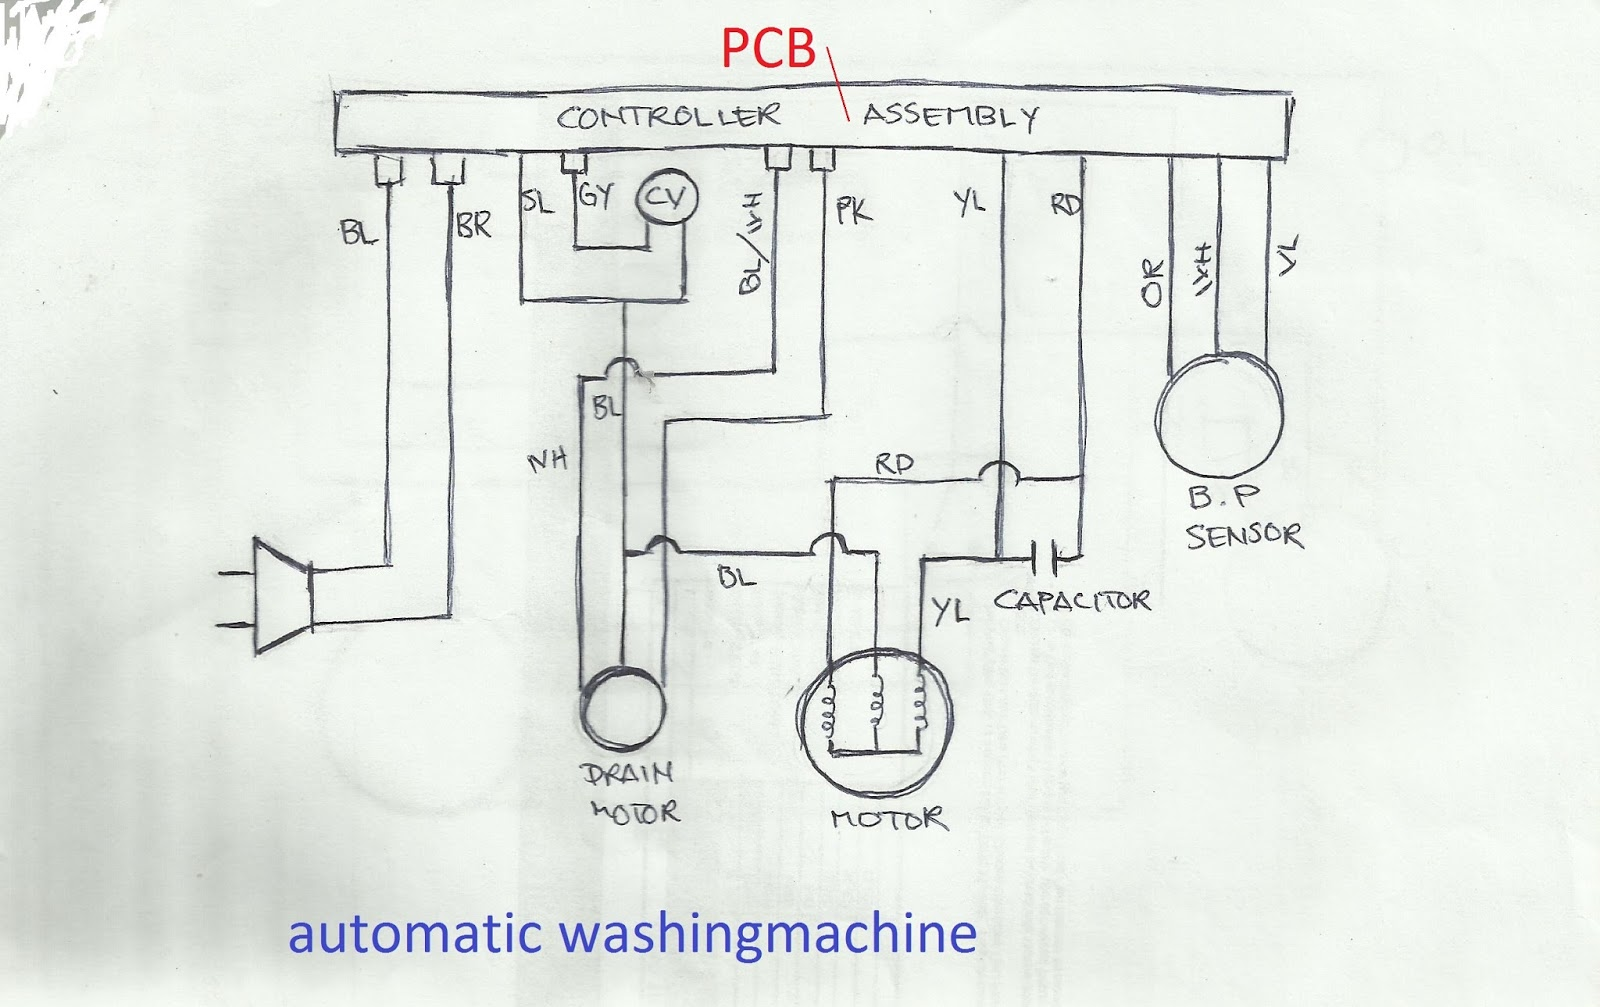 dual capacitor fan switch wiring diagram nte5 bt master telephone socket window ac get free image about